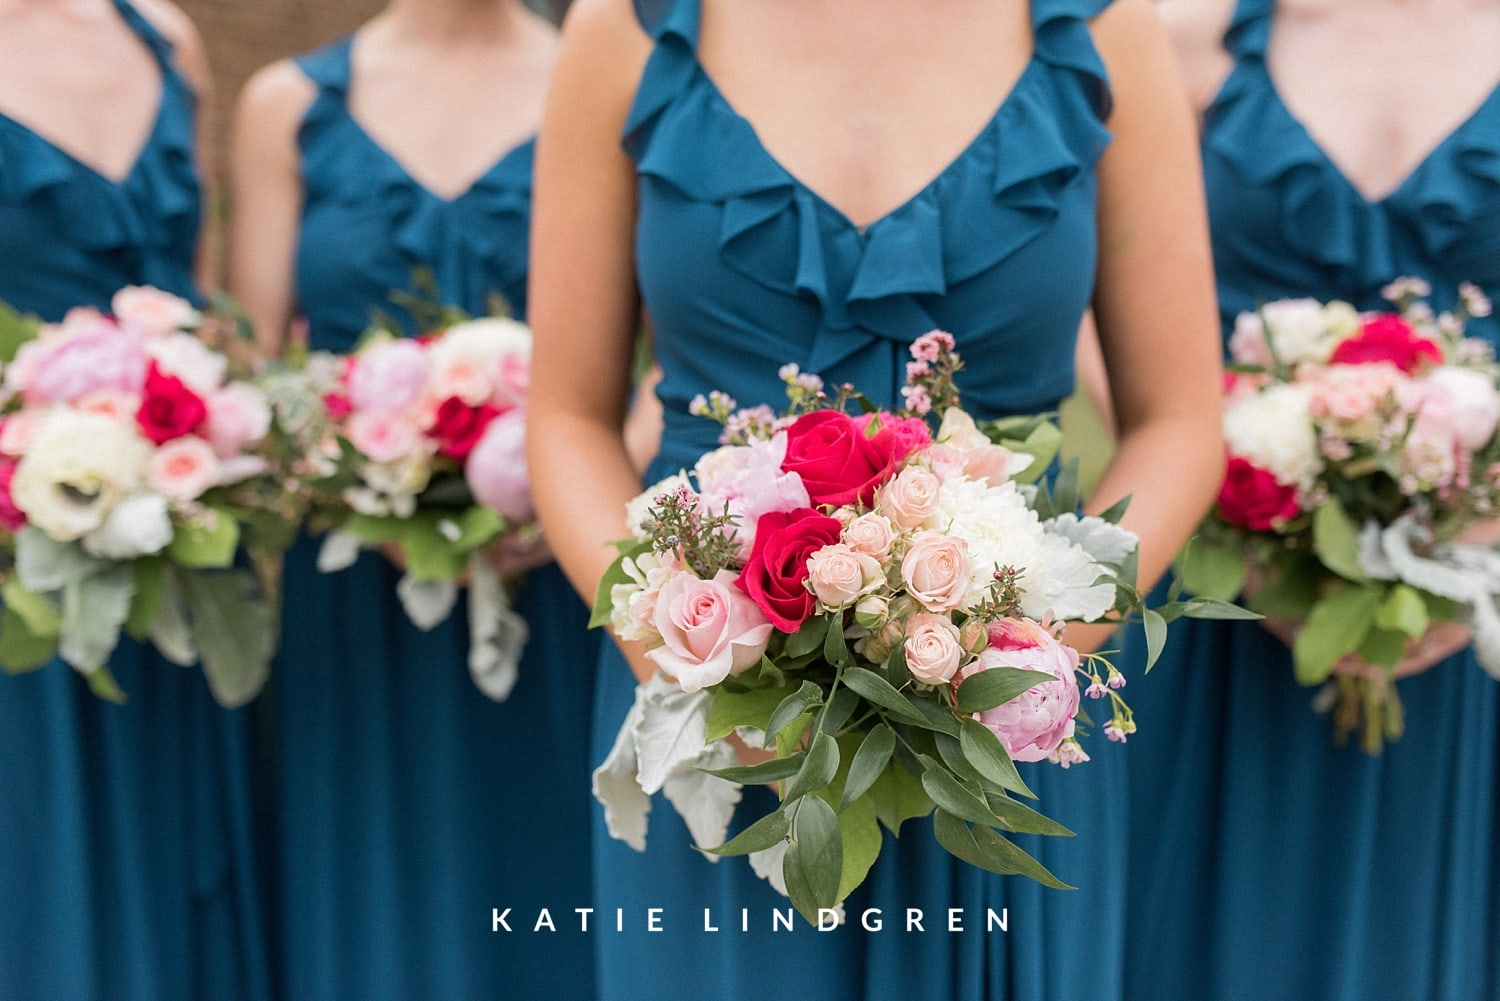 Katie Lindgren Photography